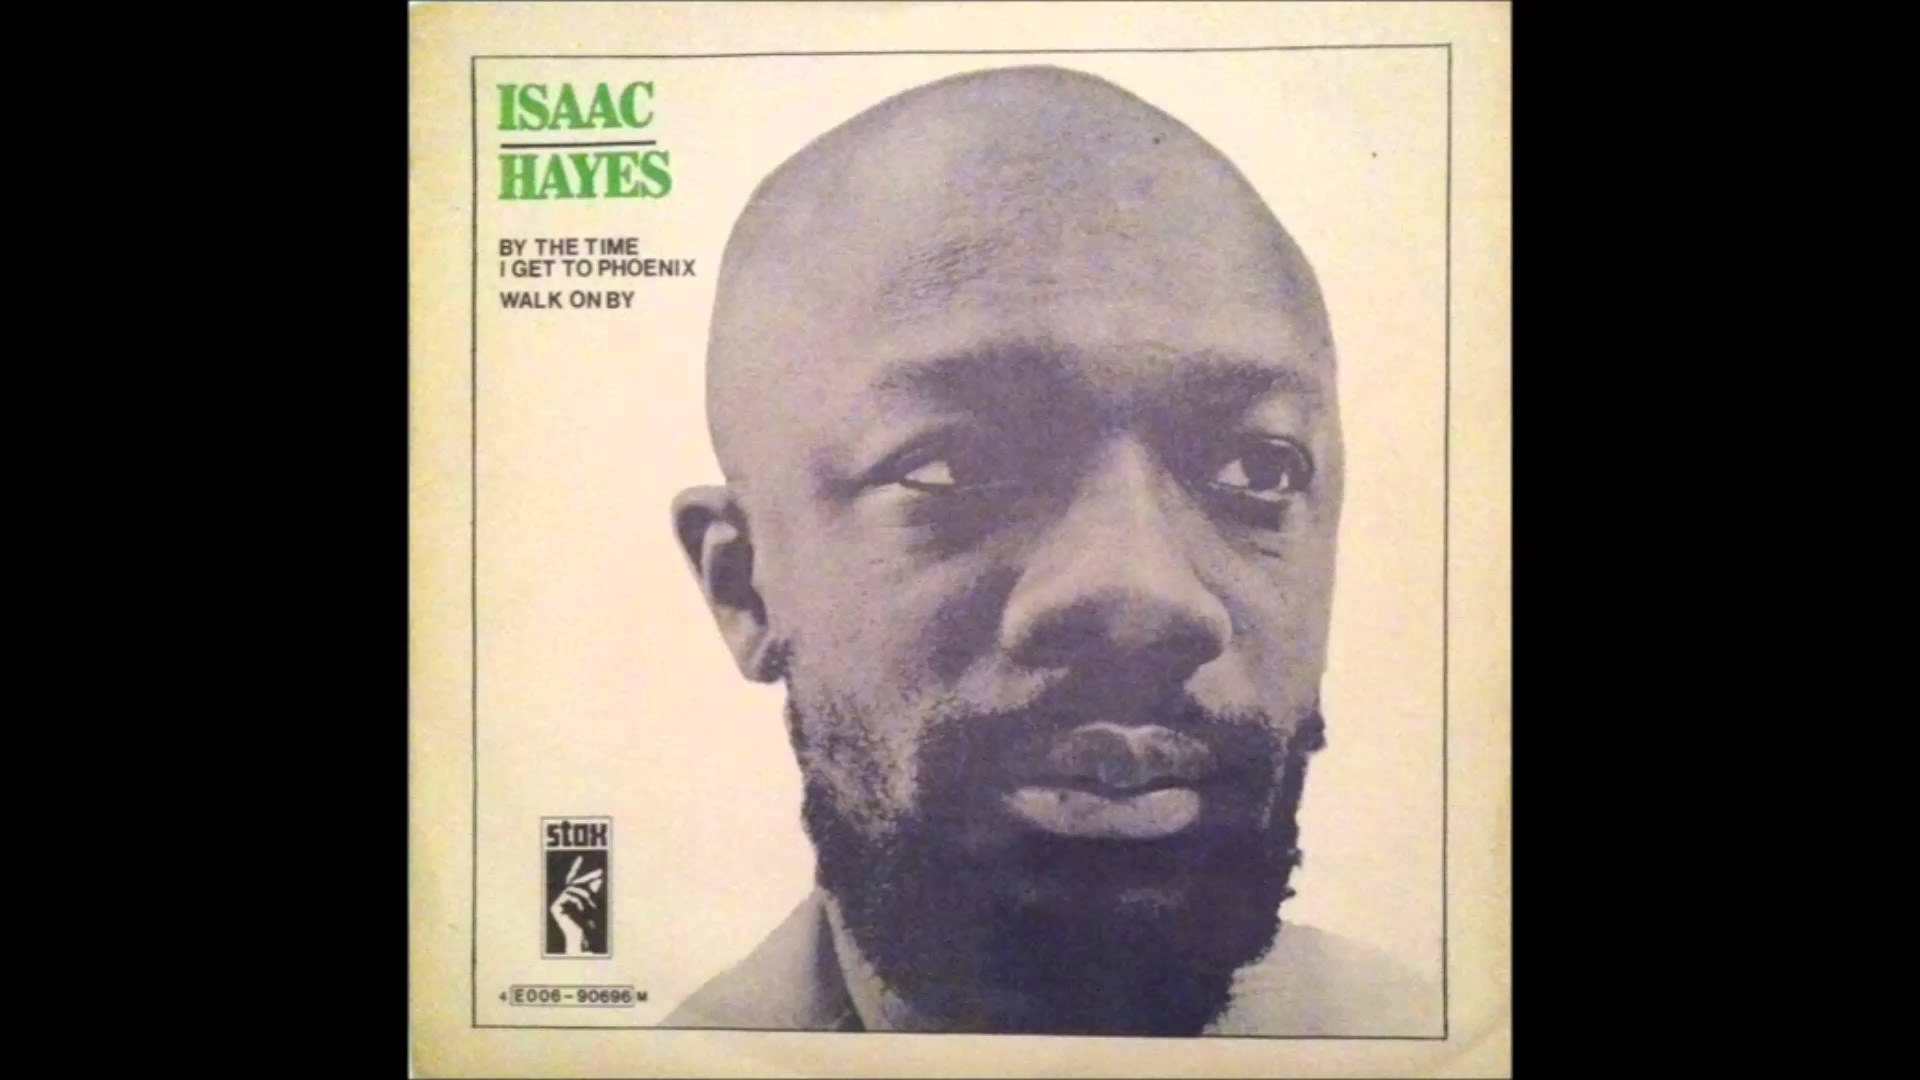 isaac hayes help me loveisaac hayes walk on by, isaac hayes shaft, isaac hayes walk on by перевод, isaac hayes - joy, isaac hayes last fm, isaac hayes — theme from shaft, isaac hayes hyperbolicsyllabicsesquedalymistic, isaac hayes слушать, isaac hayes - chocolate chip, isaac hayes википедия, isaac hayes / black moses, isaac hayes that loving feeling, isaac hayes i can't turn around, isaac hayes feelings, isaac hayes mp3, isaac hayes two cool guys, isaac hayes - shaft перевод, isaac hayes wiki, isaac hayes shaft скачать, isaac hayes help me love